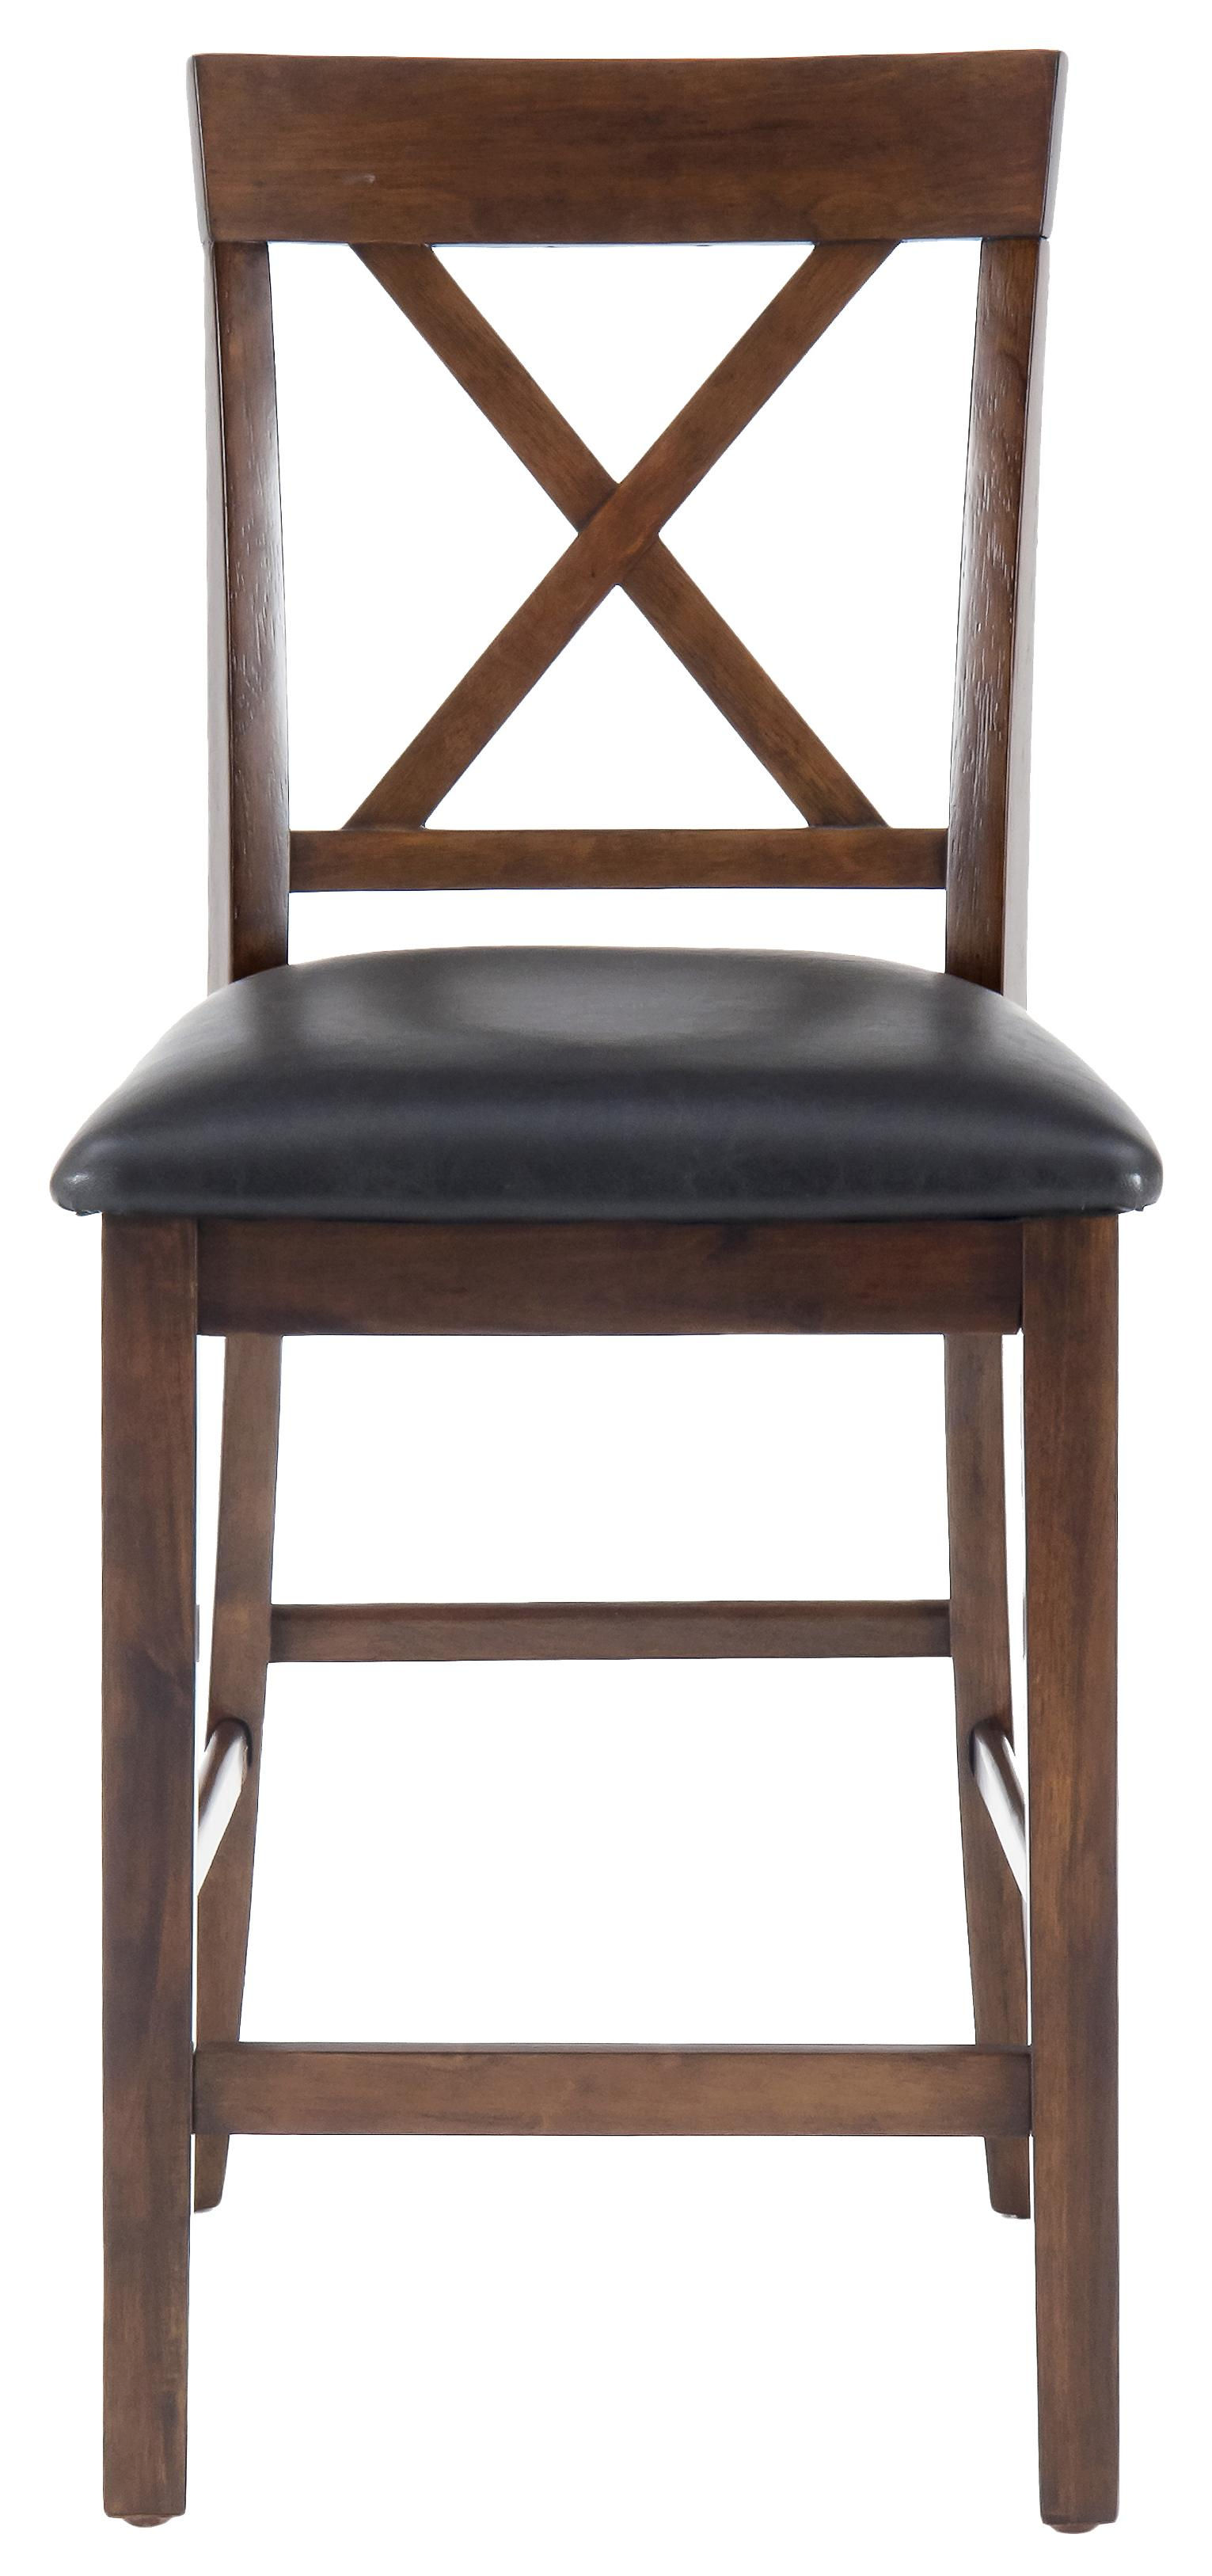 Jofran Olsen Oak X-Back Stool - Item Number: 439-BS103KD